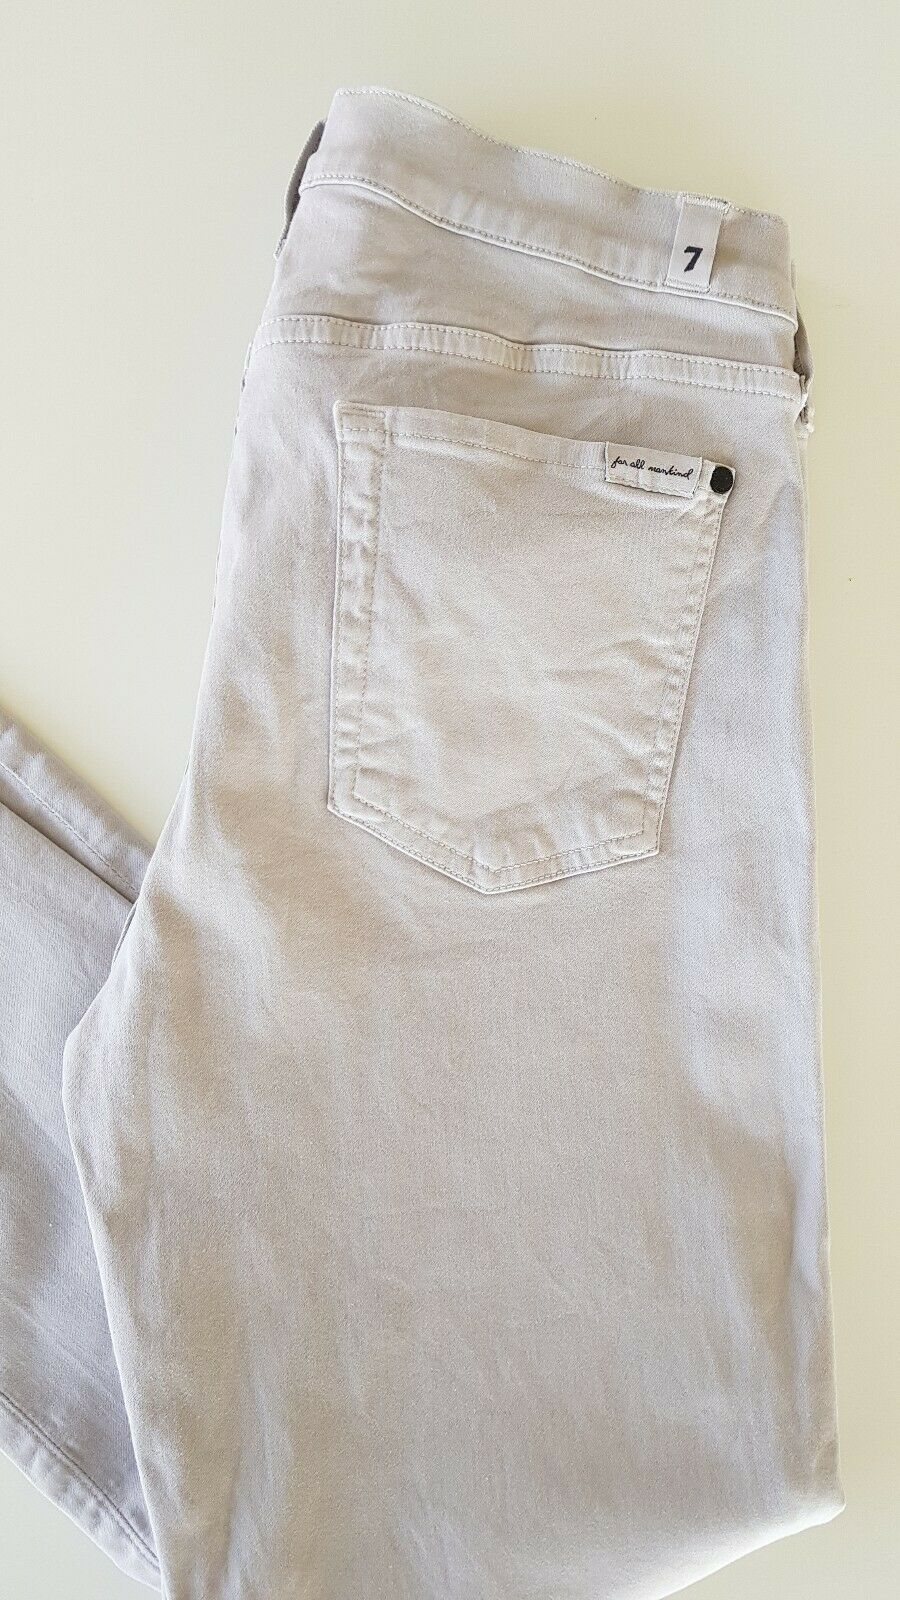 Seven for all mankind Hose grau 30